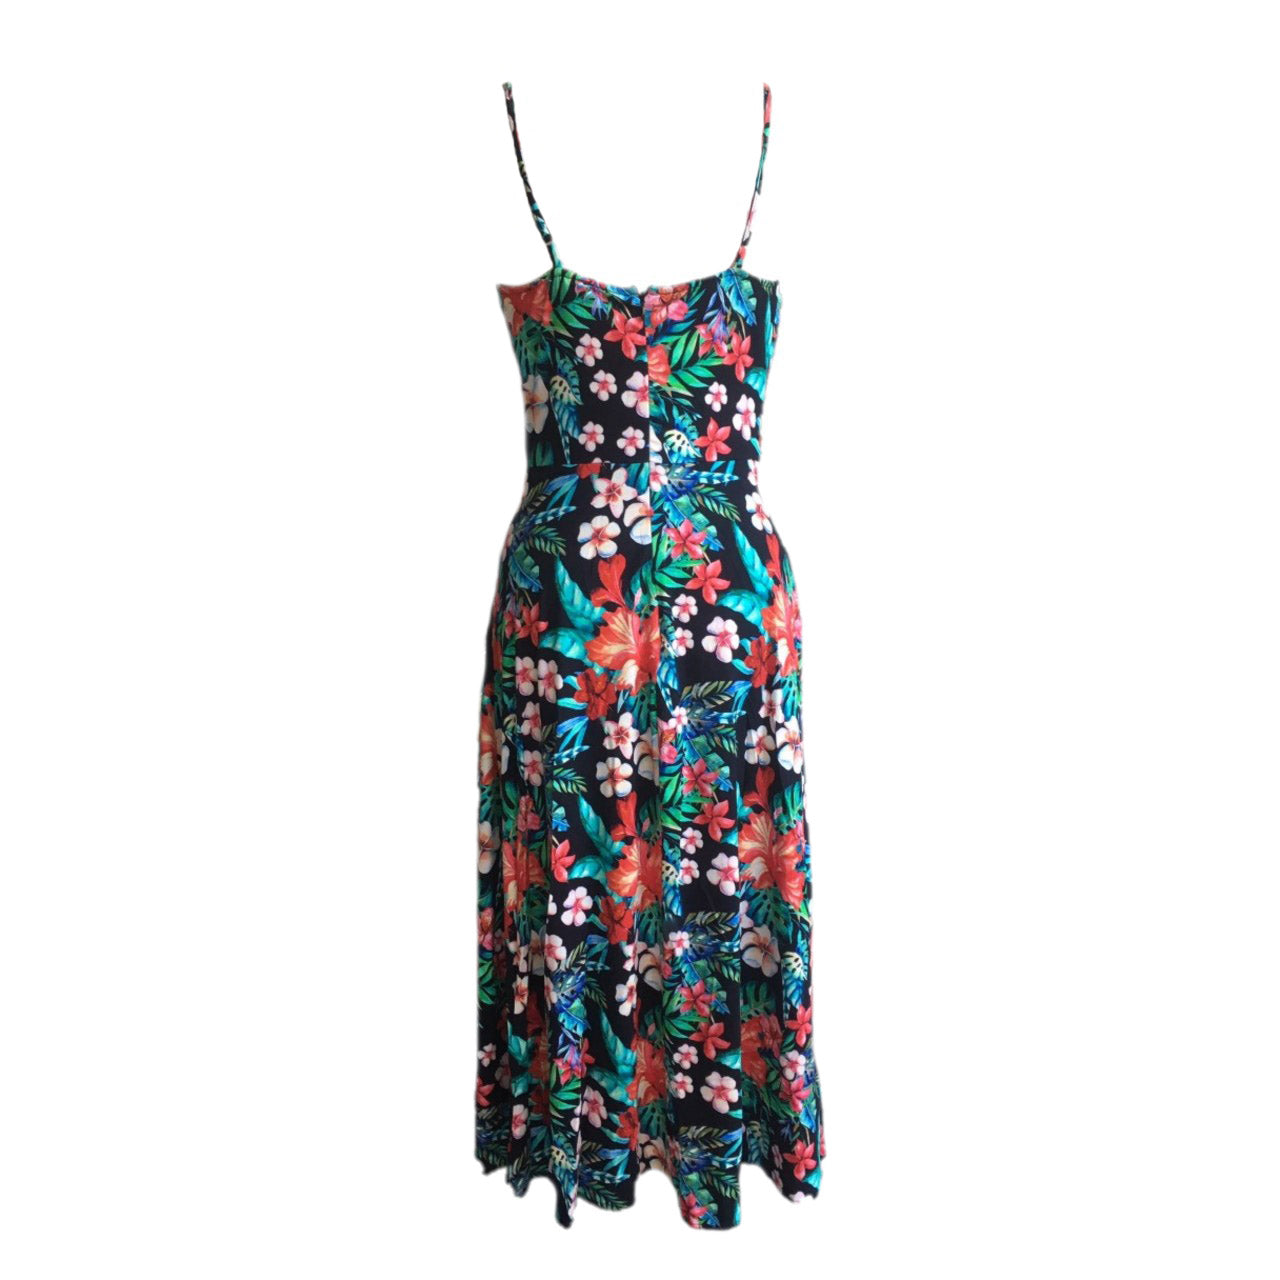 Hawaii dress- Turquoise